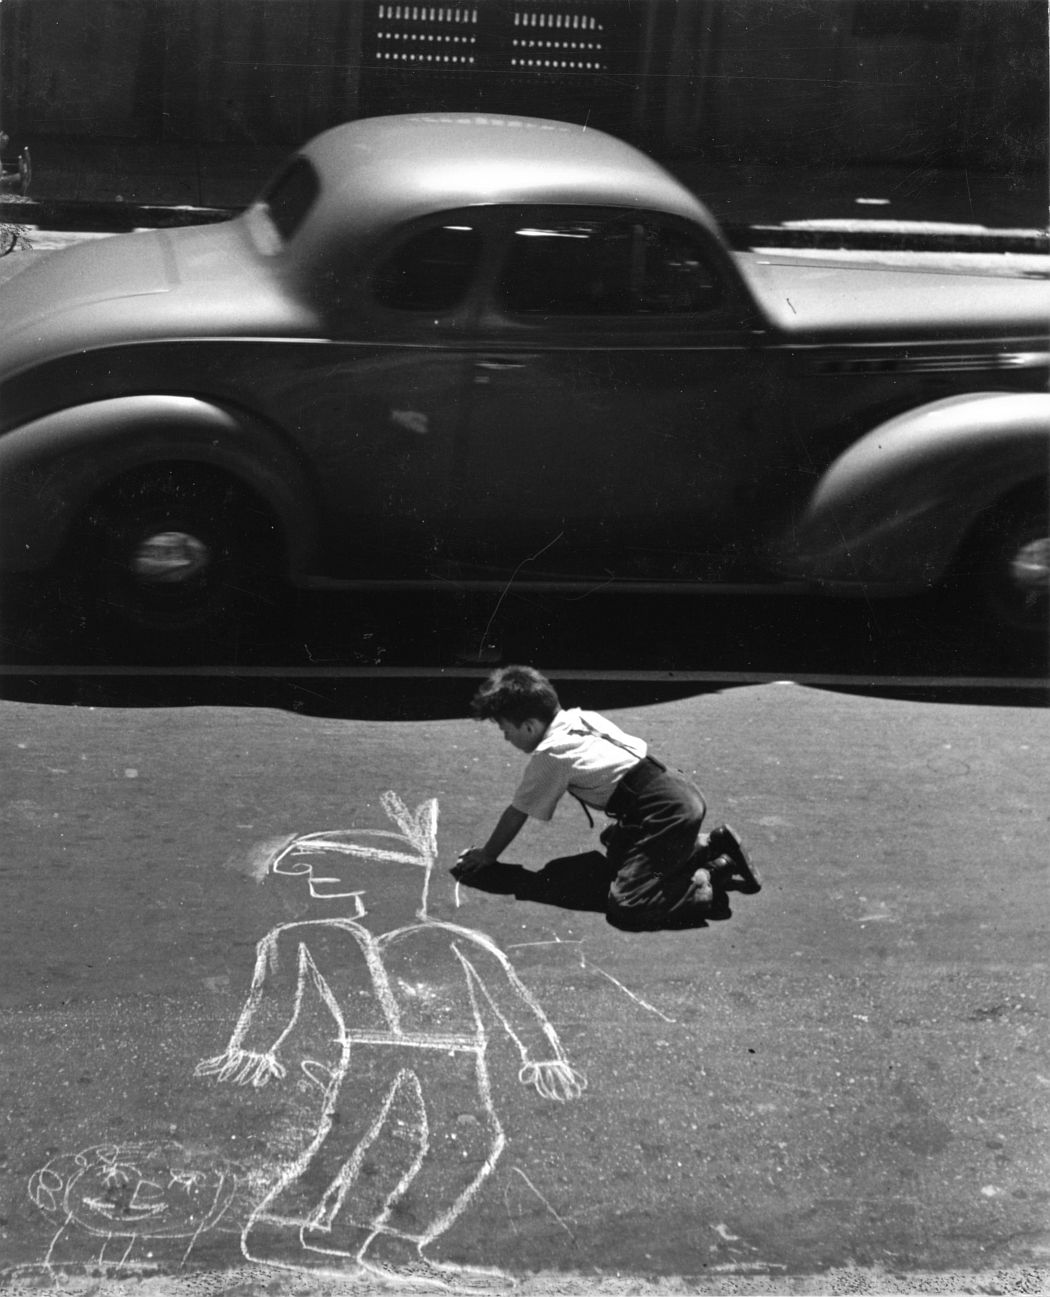 John Gutmann, The Artist Lives Dangerously, San Francisco, 1938; gelatin silver print; 14 x 11 in.; BAMPFA, promised gift of Victoria Belco and William Goodman in memory of Teresa Goodman. John Gutmann, © 1998 Center for Creative Photography, Arizona Board of Regents.